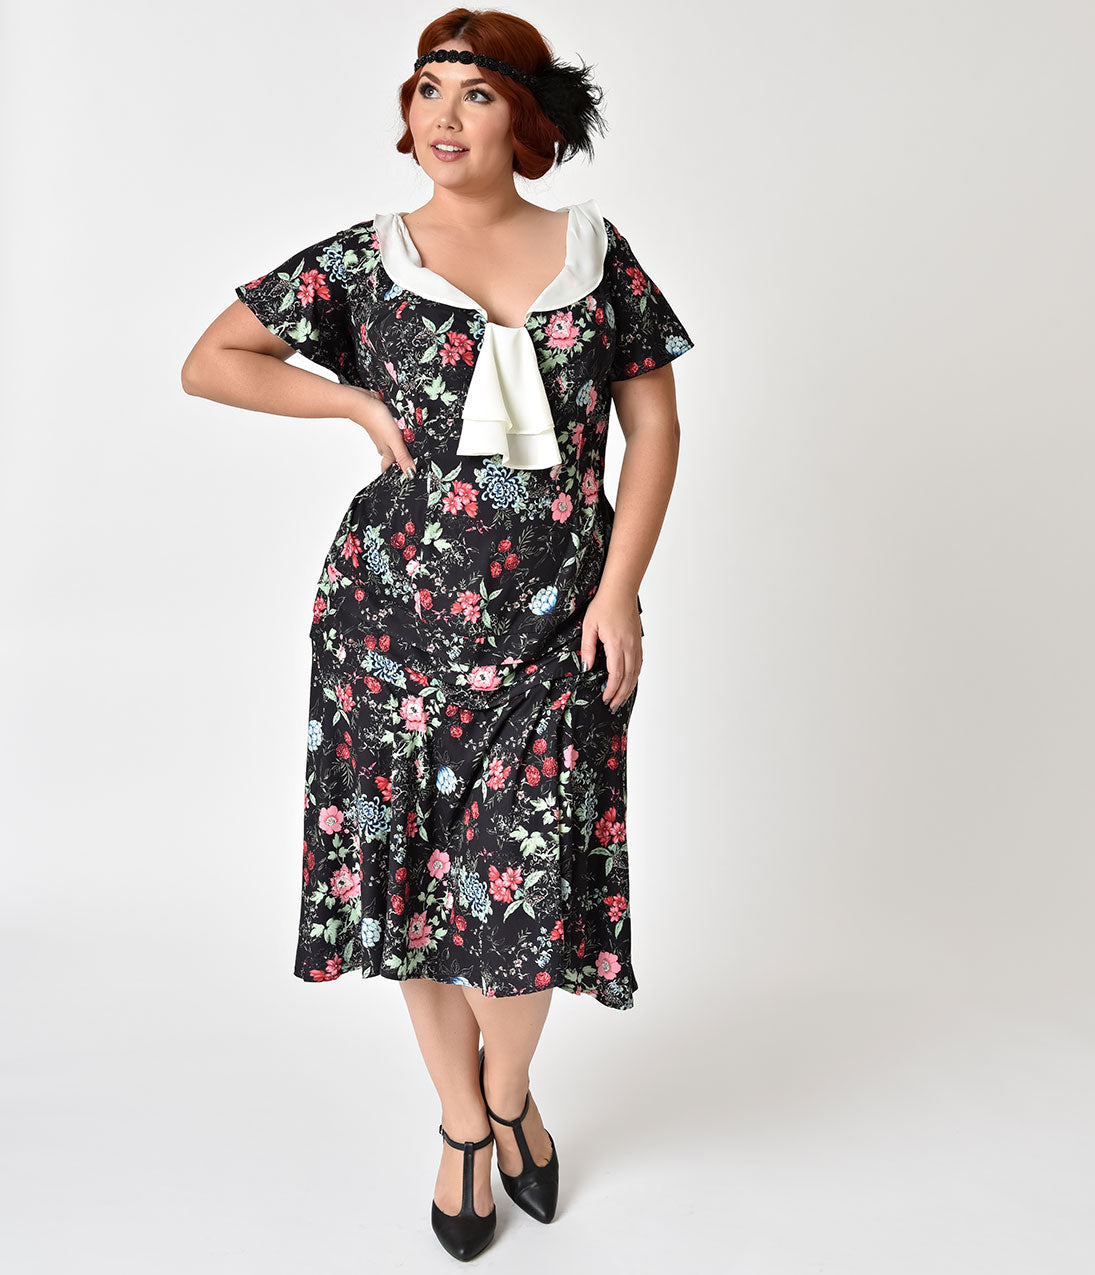 1920s Style Dresses, Flapper Dresses Unique Vintage Plus Size 1920S Style Black Wildflower Print Wilshire Flapper Day Dress $74.00 AT vintagedancer.com